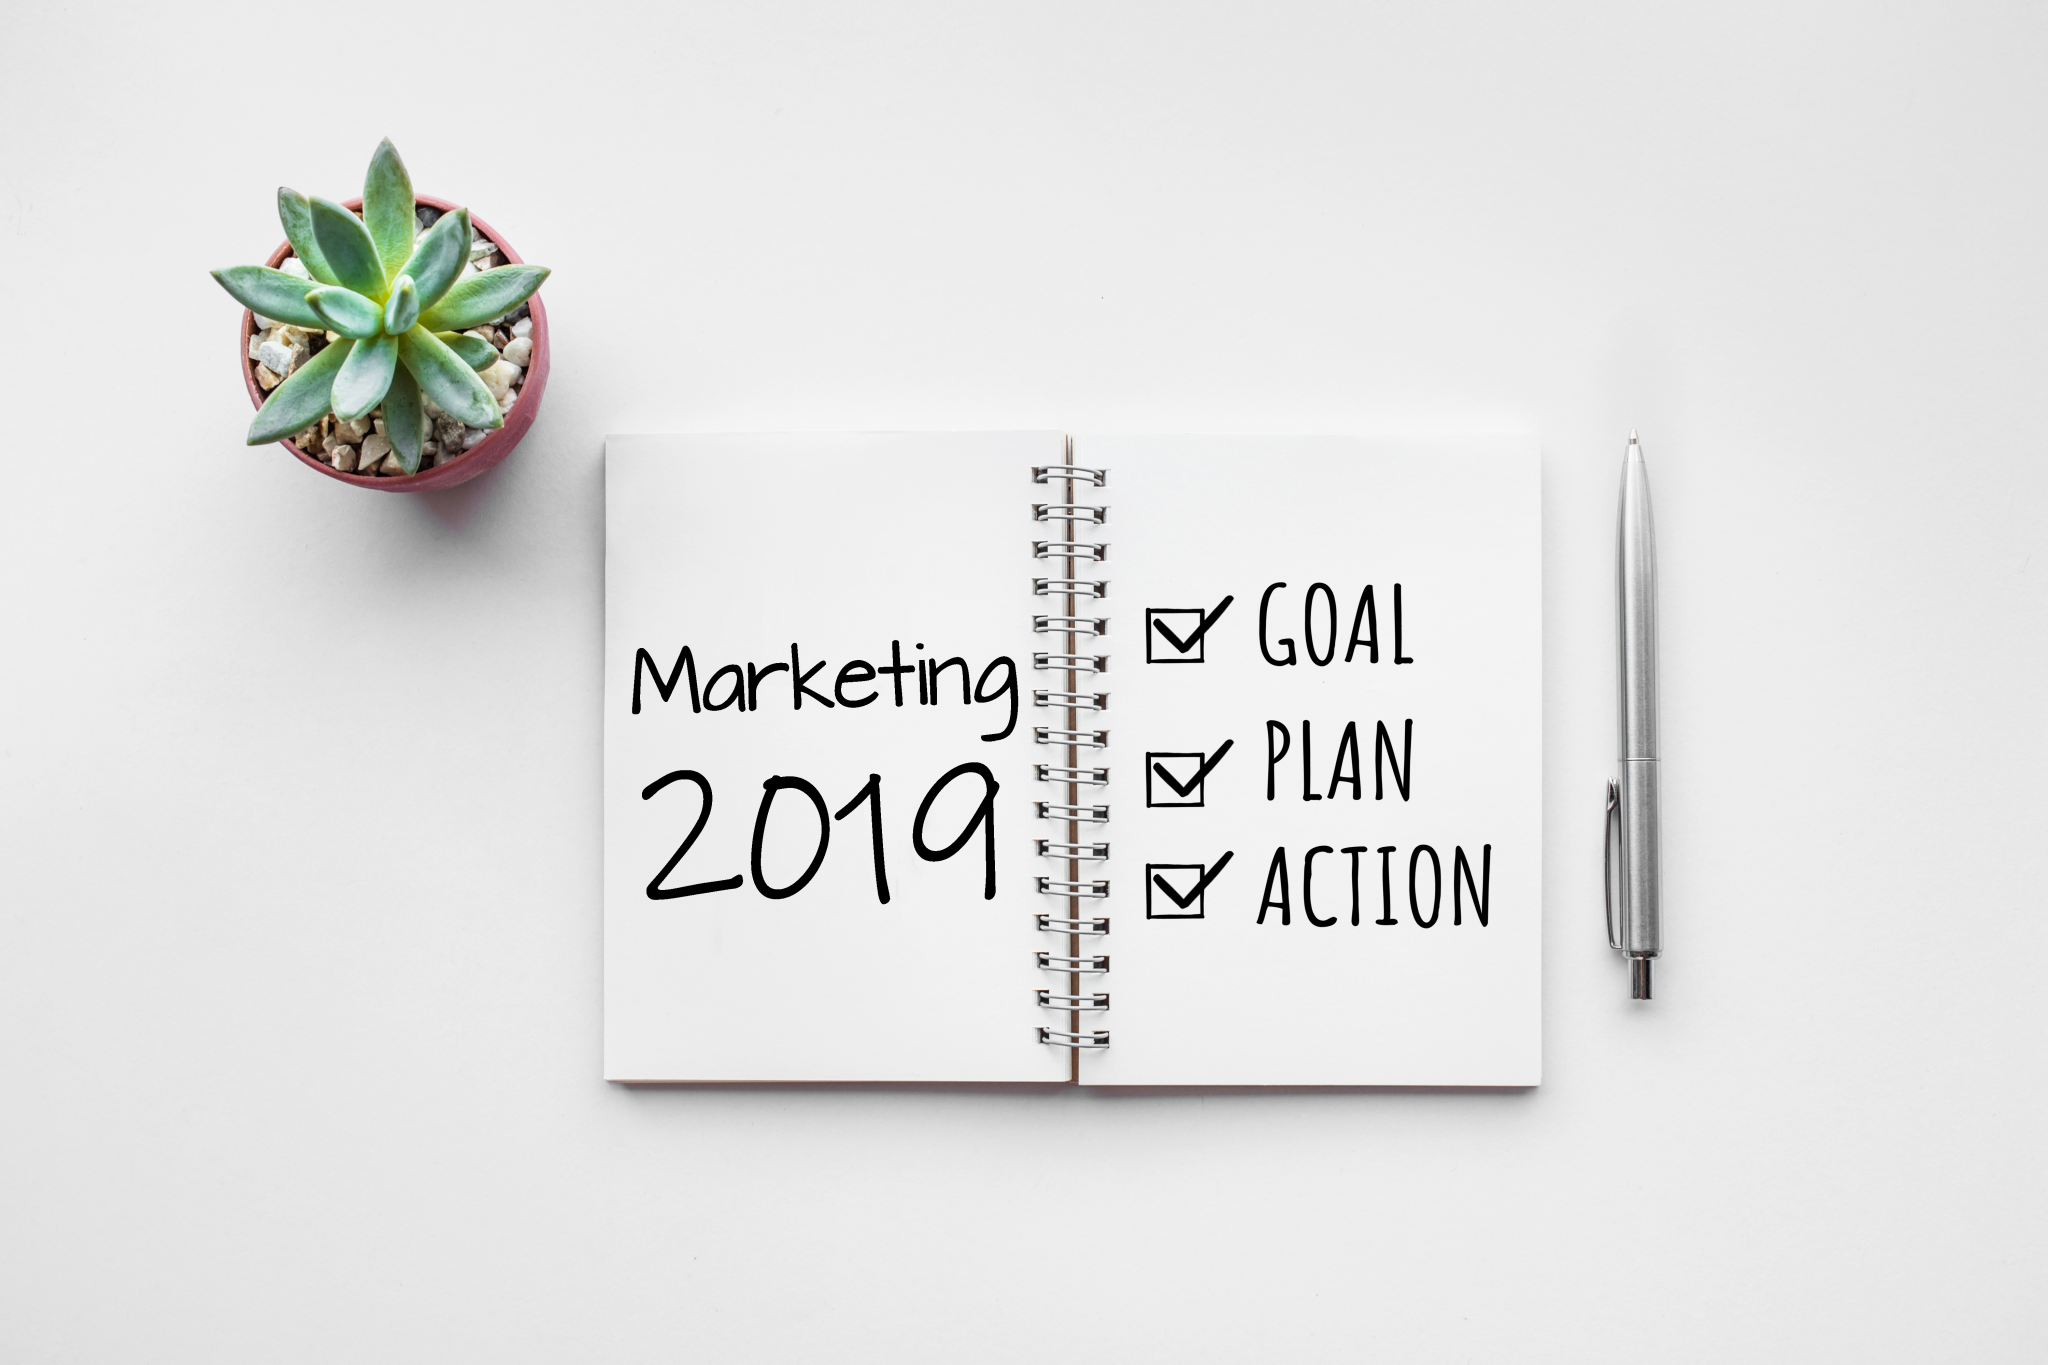 Image of a notebook with 2019 marketing plans